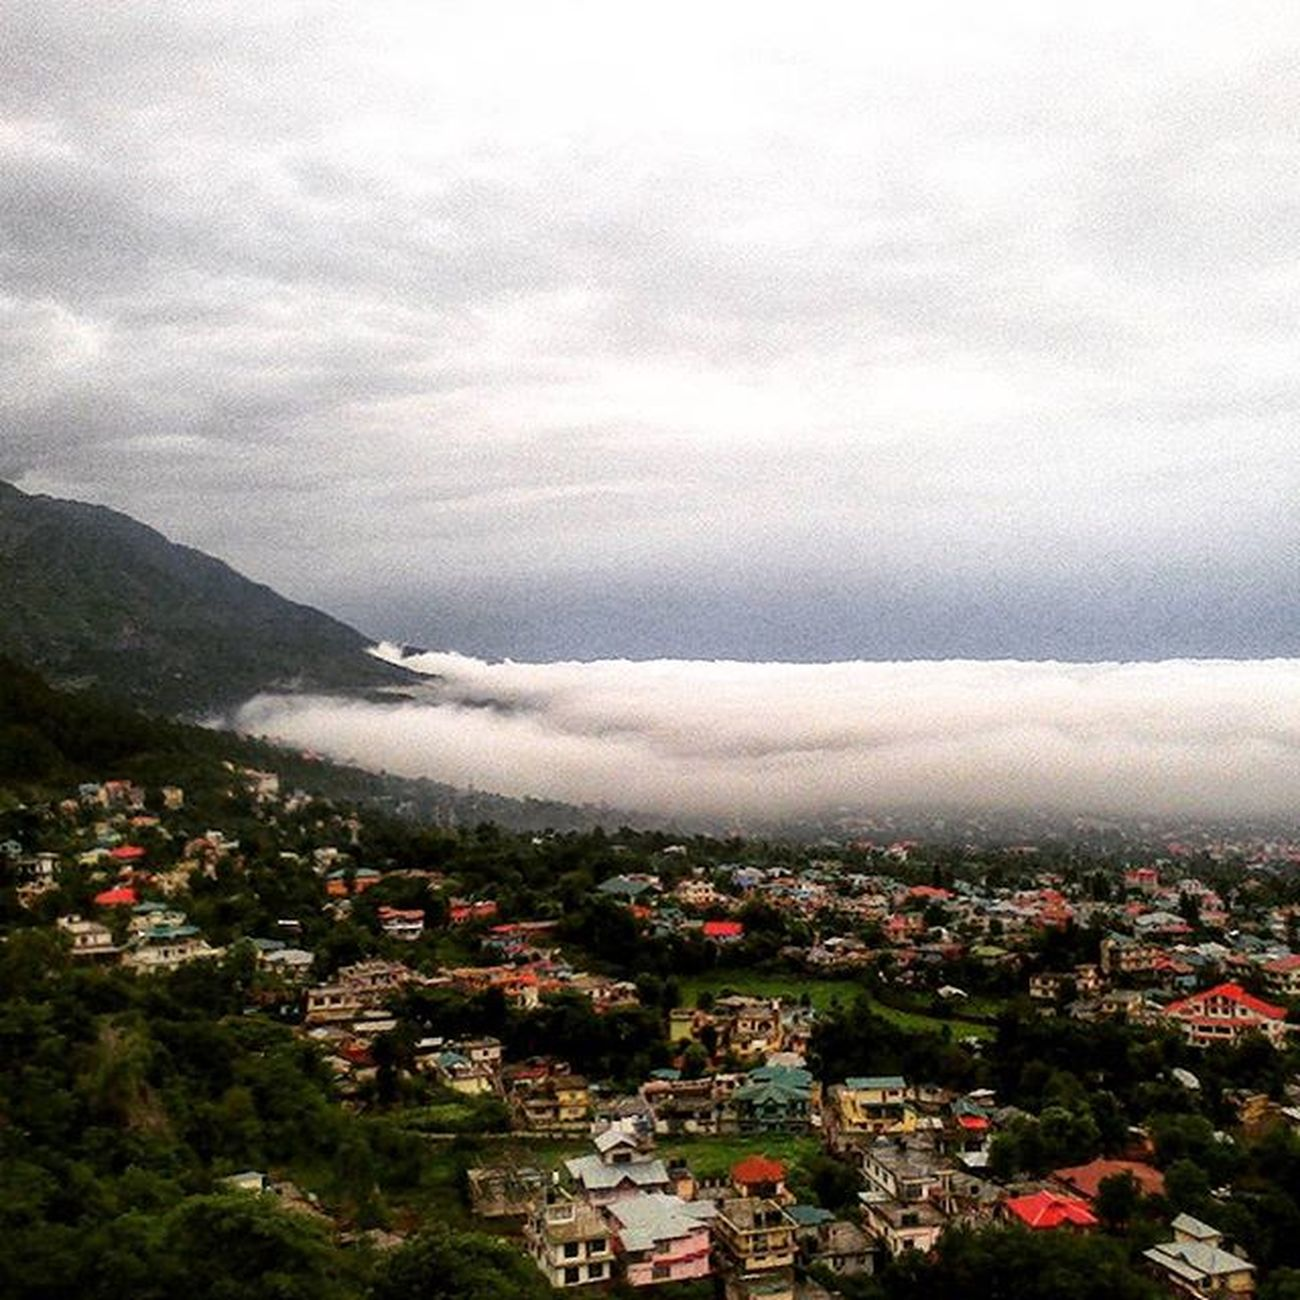 Sea of clouds spreading all over the town ☁☁ Awesome Weather Dharamshala Hometown Clouds Cloudporn Instasky Horizon Himachalpradesh Mothernature Naturegram Hometown Ourplanetisbeautiful Ourindia HEAVENONEARTH PicturePerfect 2015  Himachalpictures Daily_himachal India_ig something New